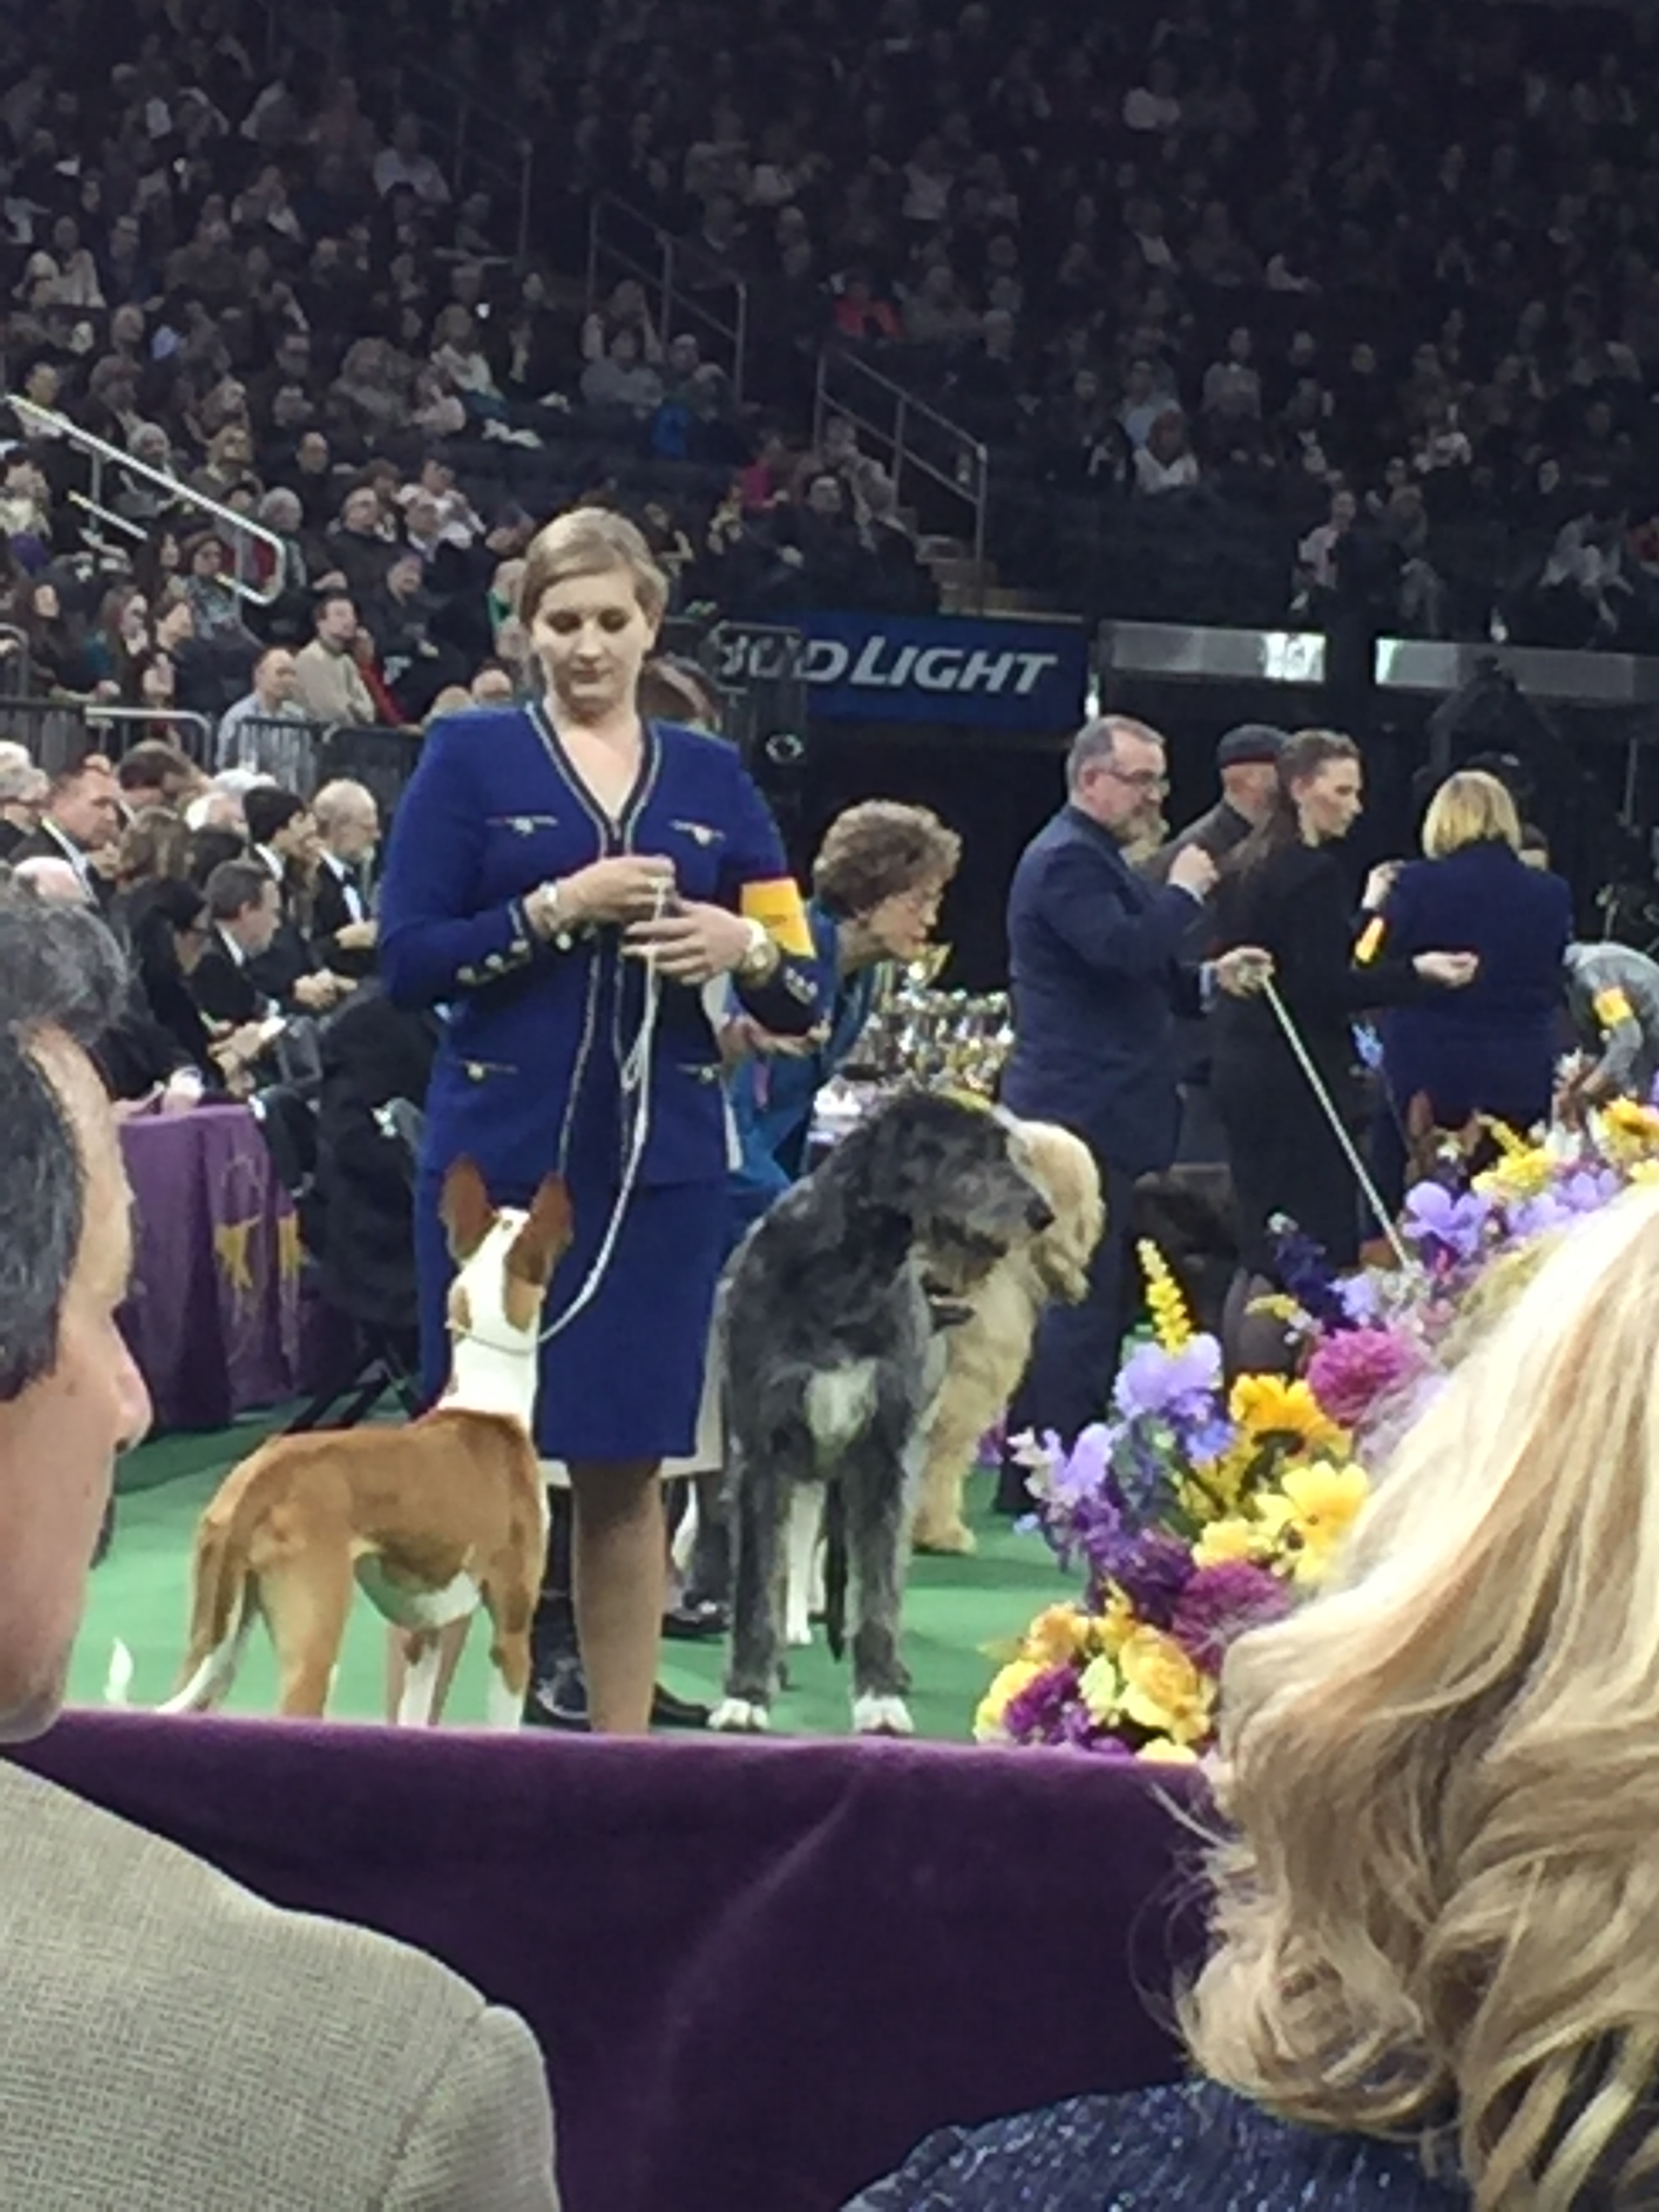 Westminster Dog Show Television Broadcast